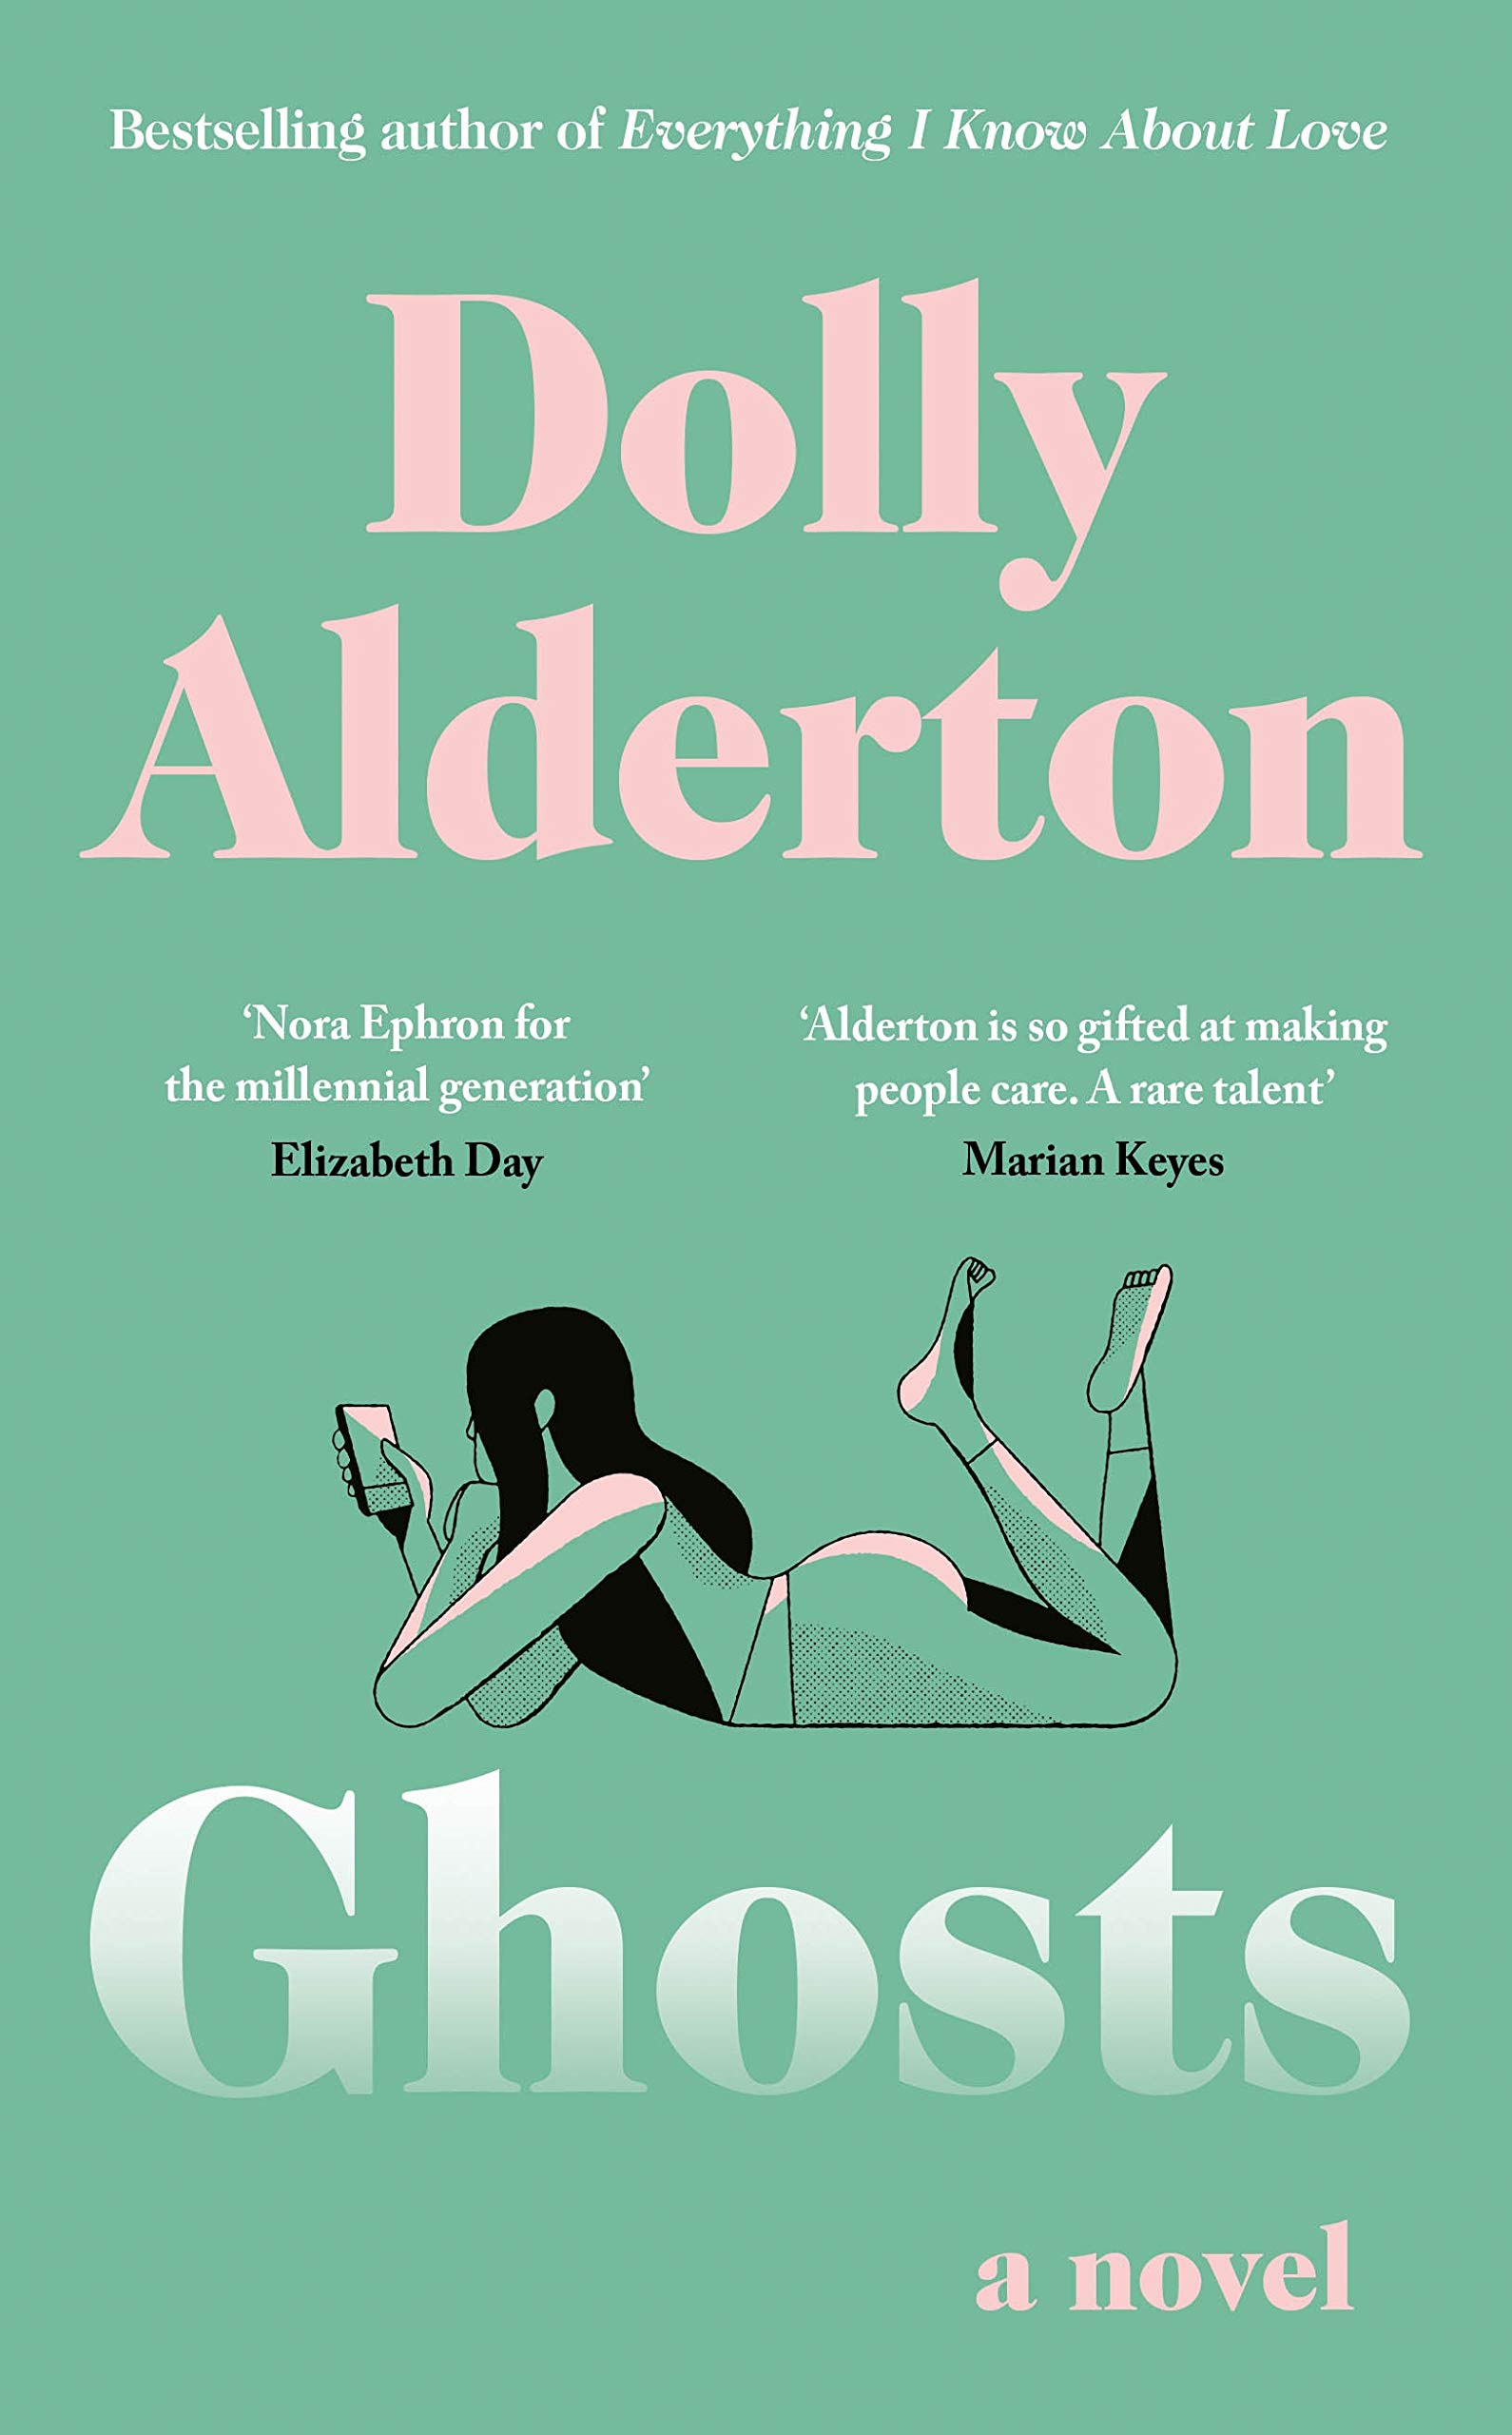 Ghosts: The Top 10 Sunday Times Bestseller: Amazon.co.uk: Alderton, Dolly:  9780241434543: Books